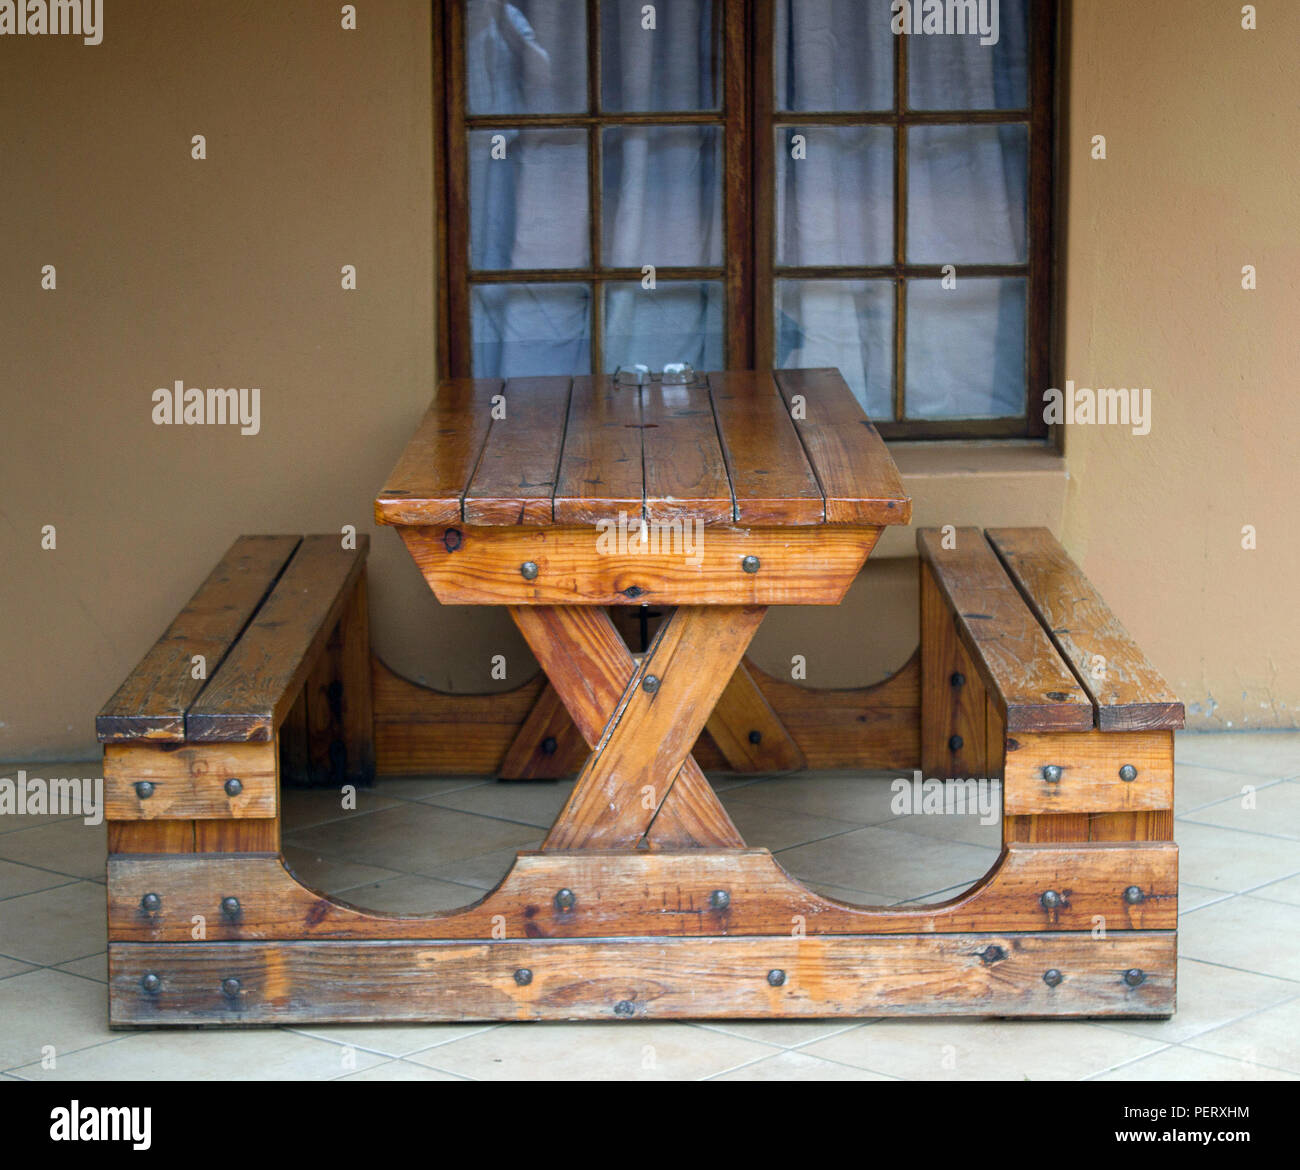 Sturdy wooden table with two seats attached as one unit standing on stoep against a window - Stock Image